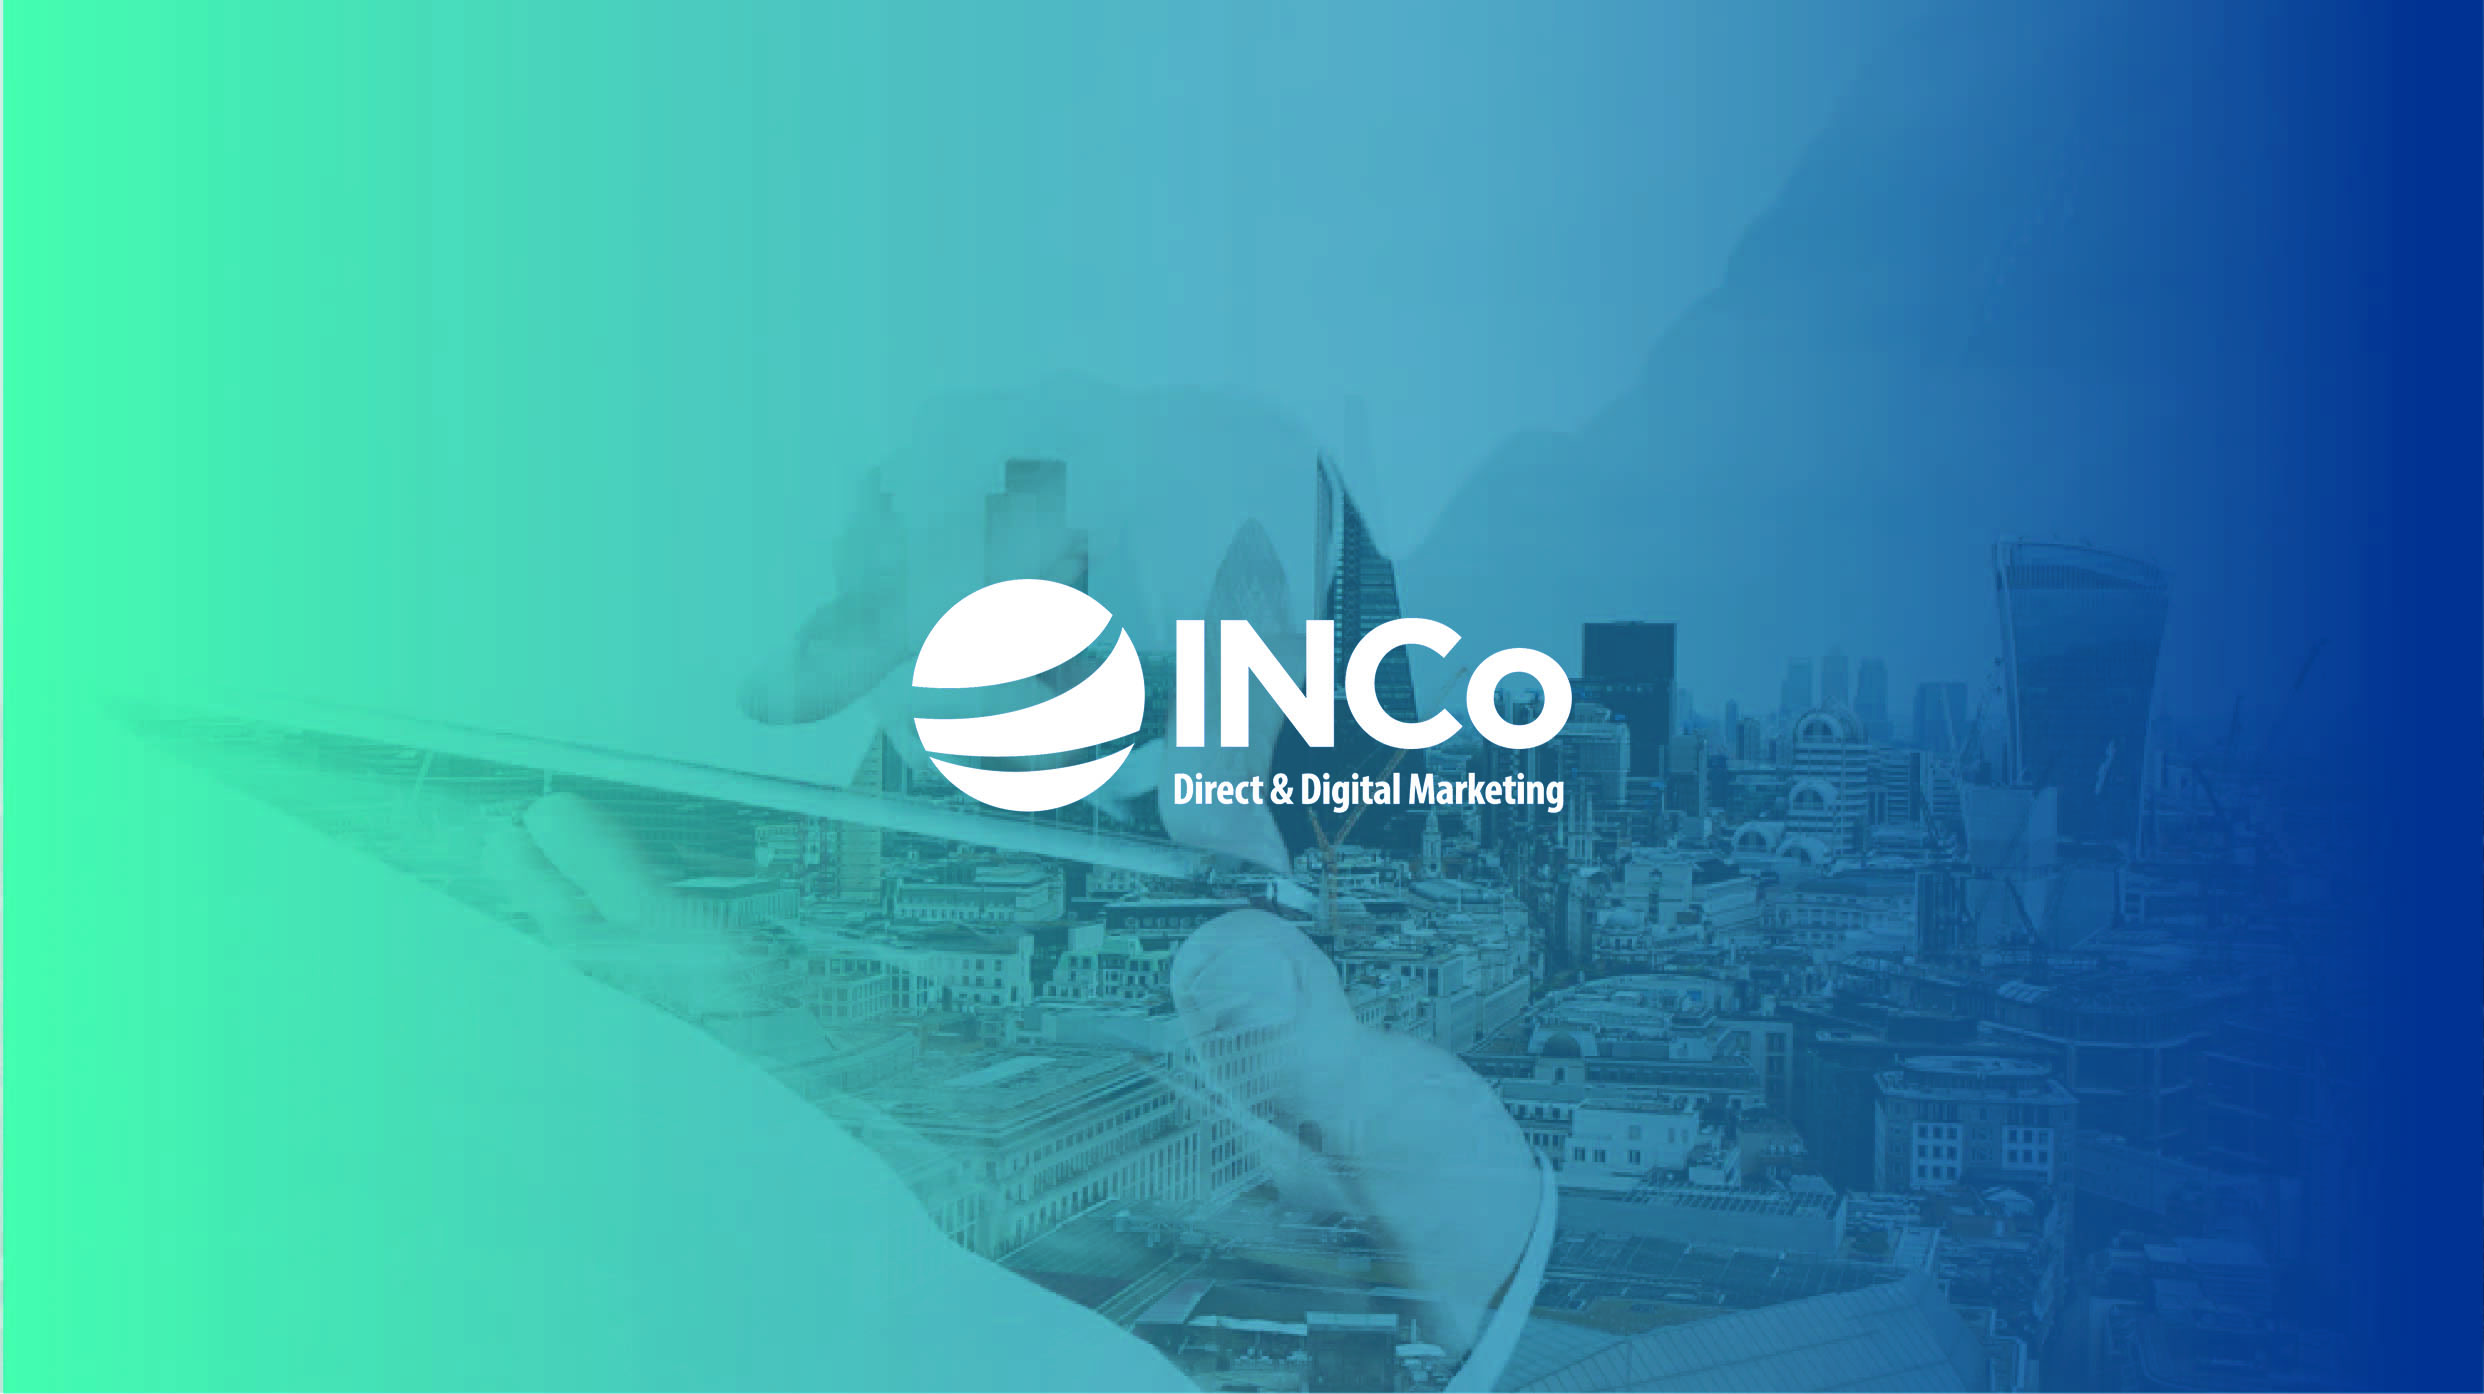 INCo- Inbound Marketing & Sales Enablement. Strategy & Delivery Services to help your business grow.